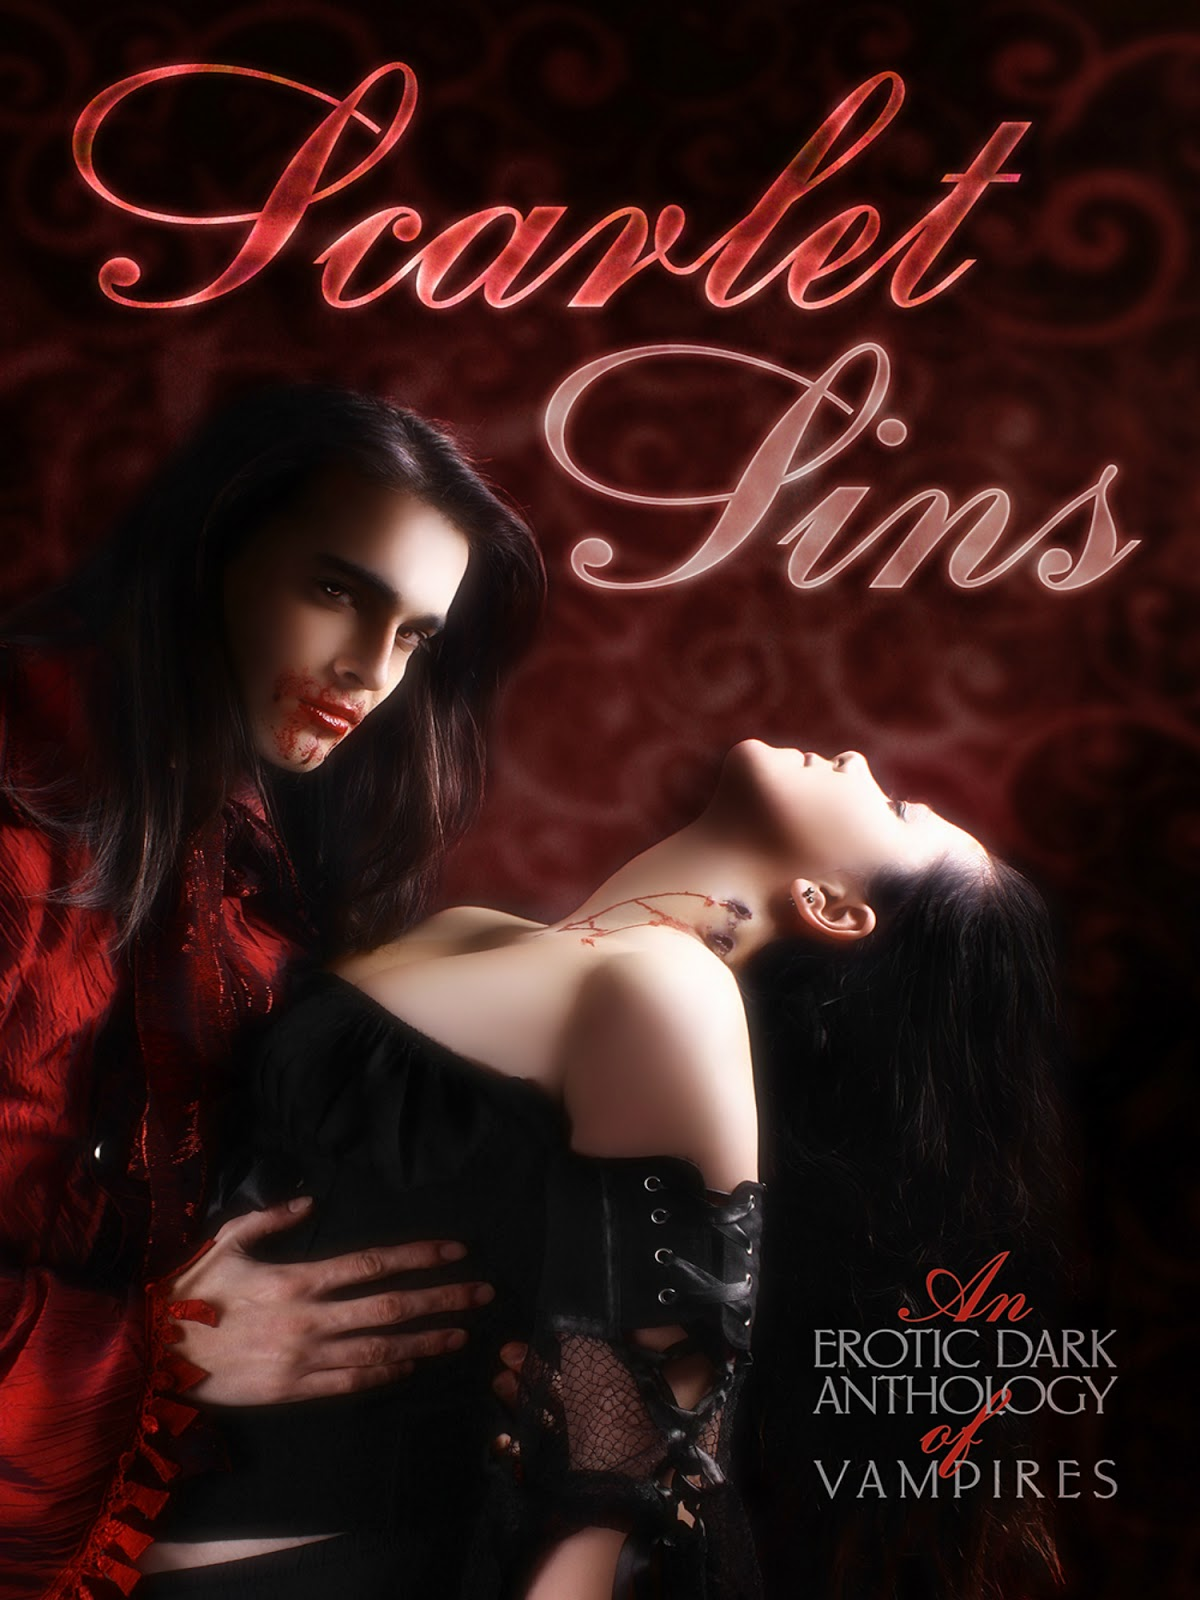 The link between vampire books and bdsm erotic romance